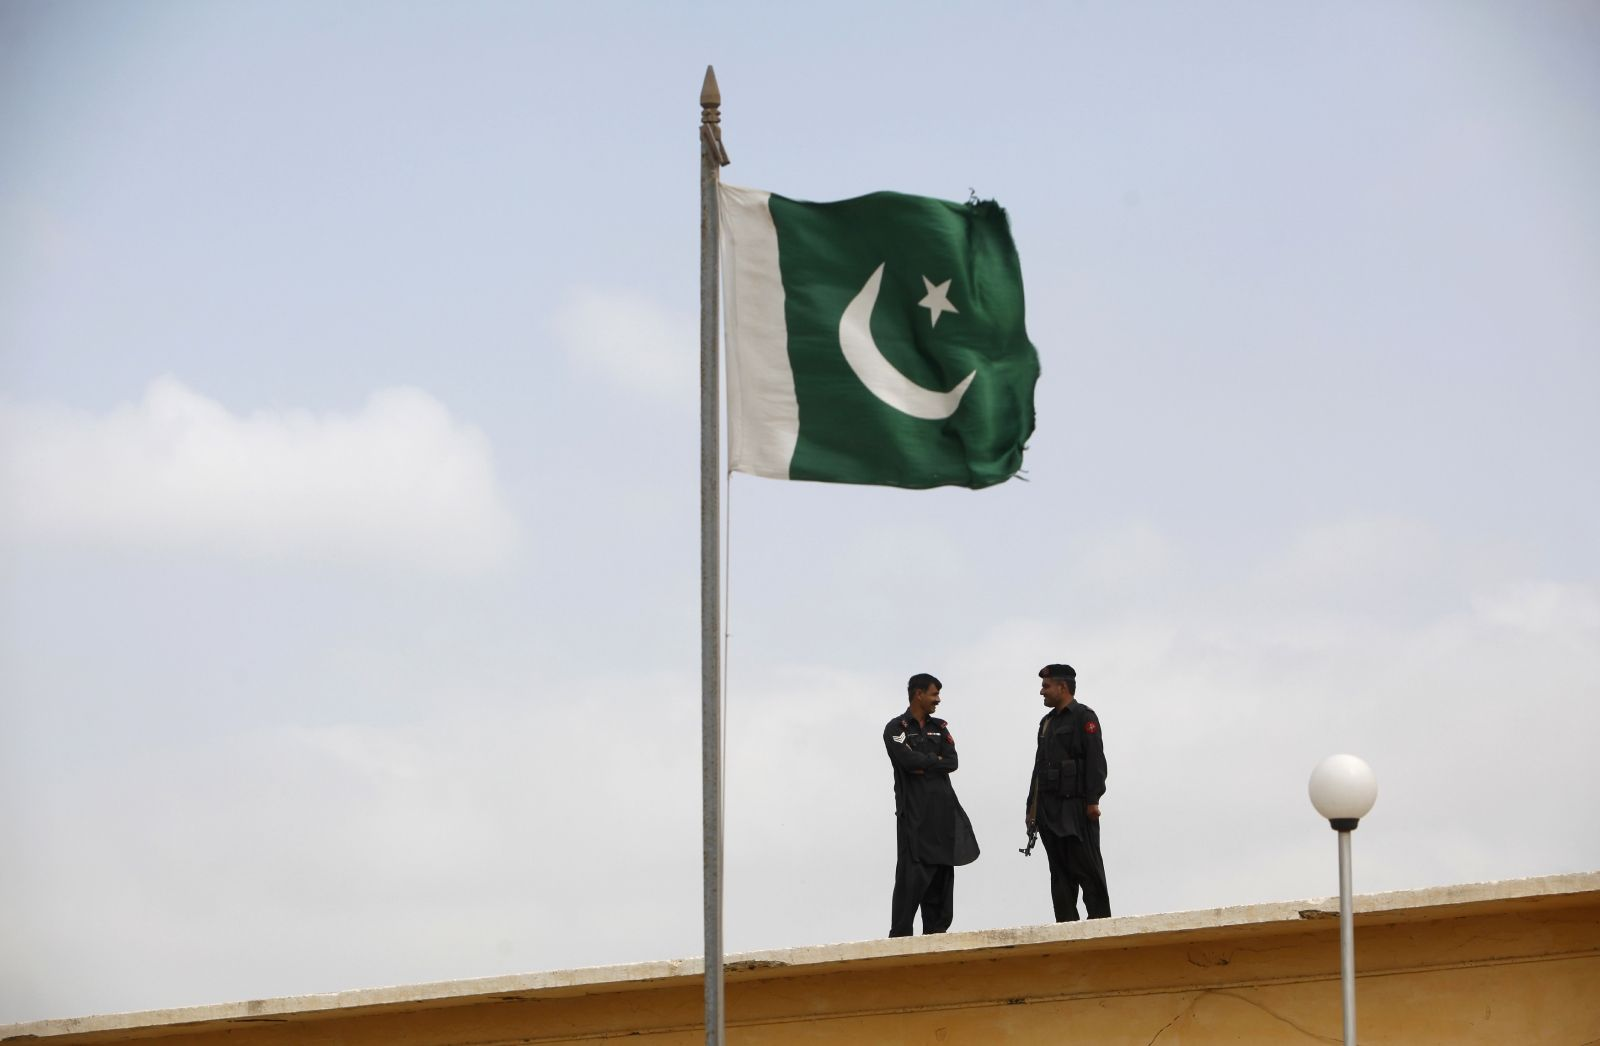 Missing 54 Pakistan prison